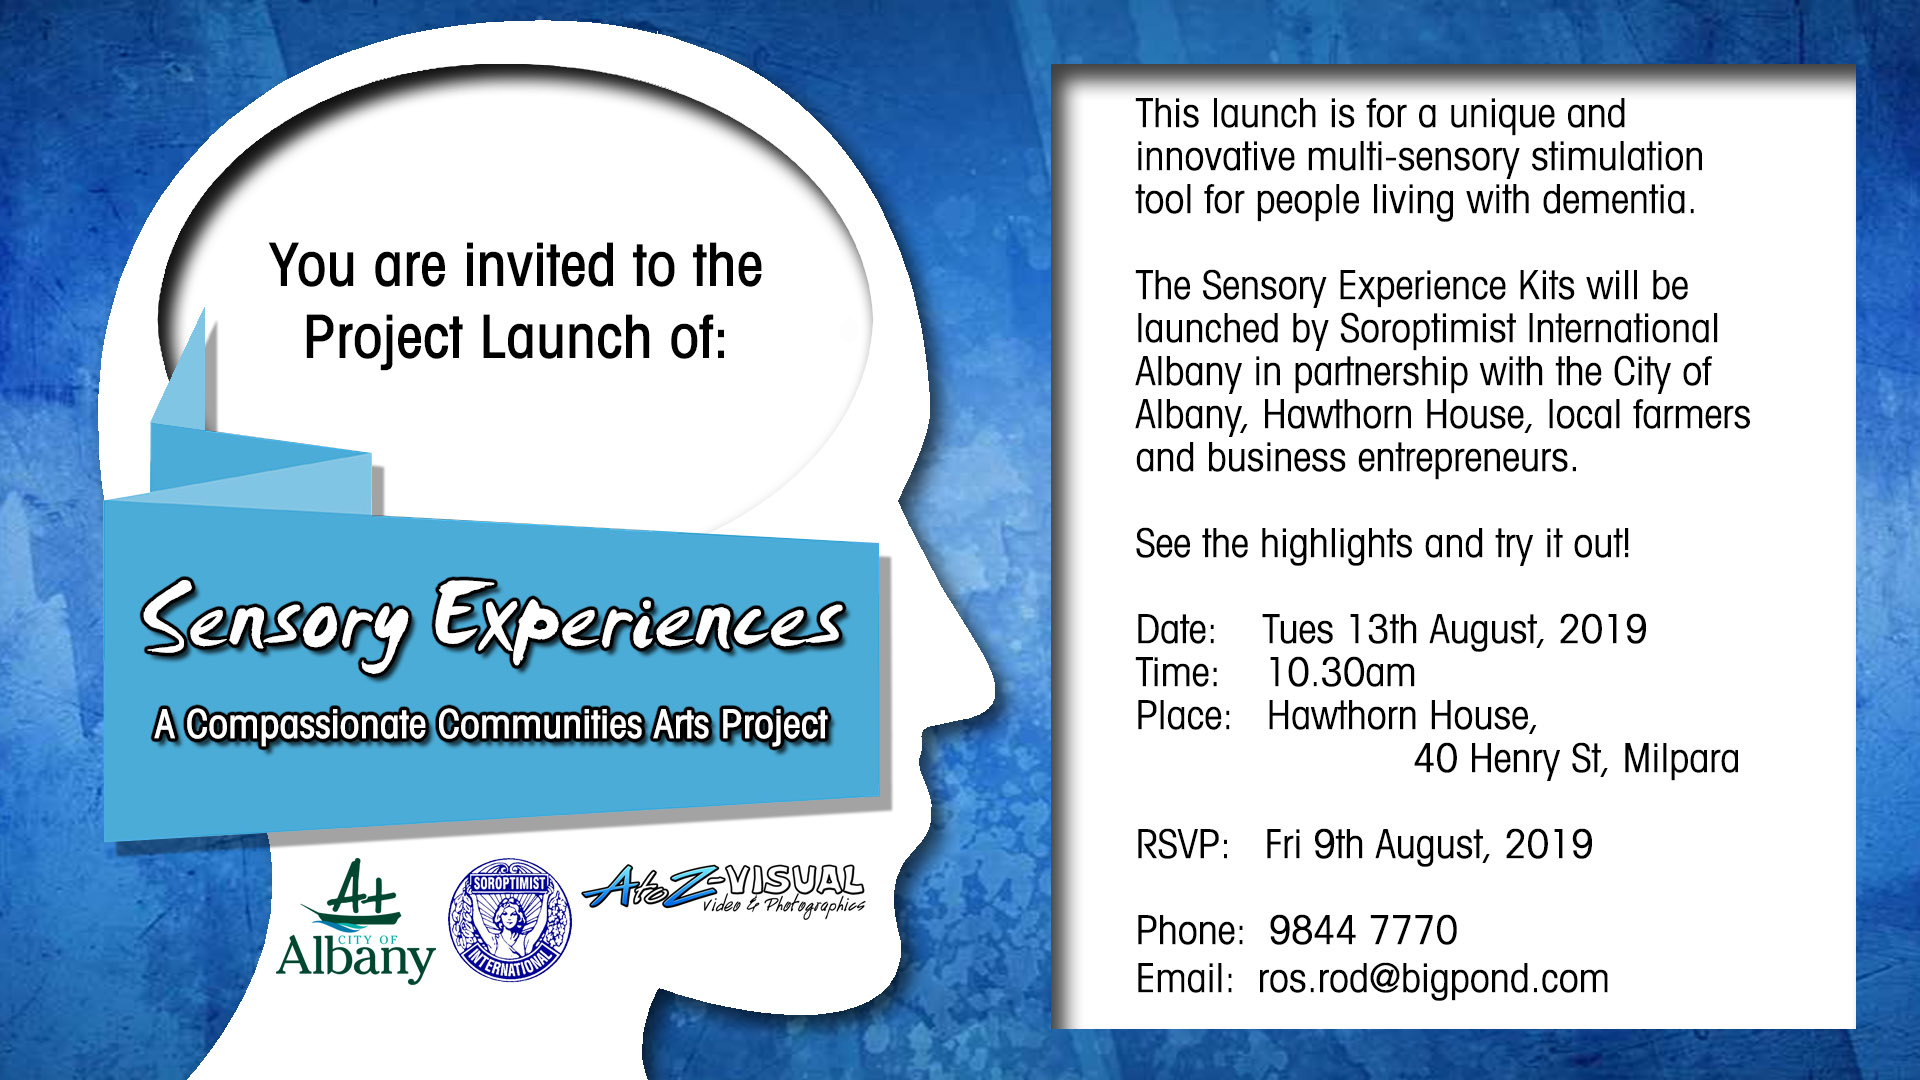 SensoryExperiences-YouAreInvited-August-2019-Launch